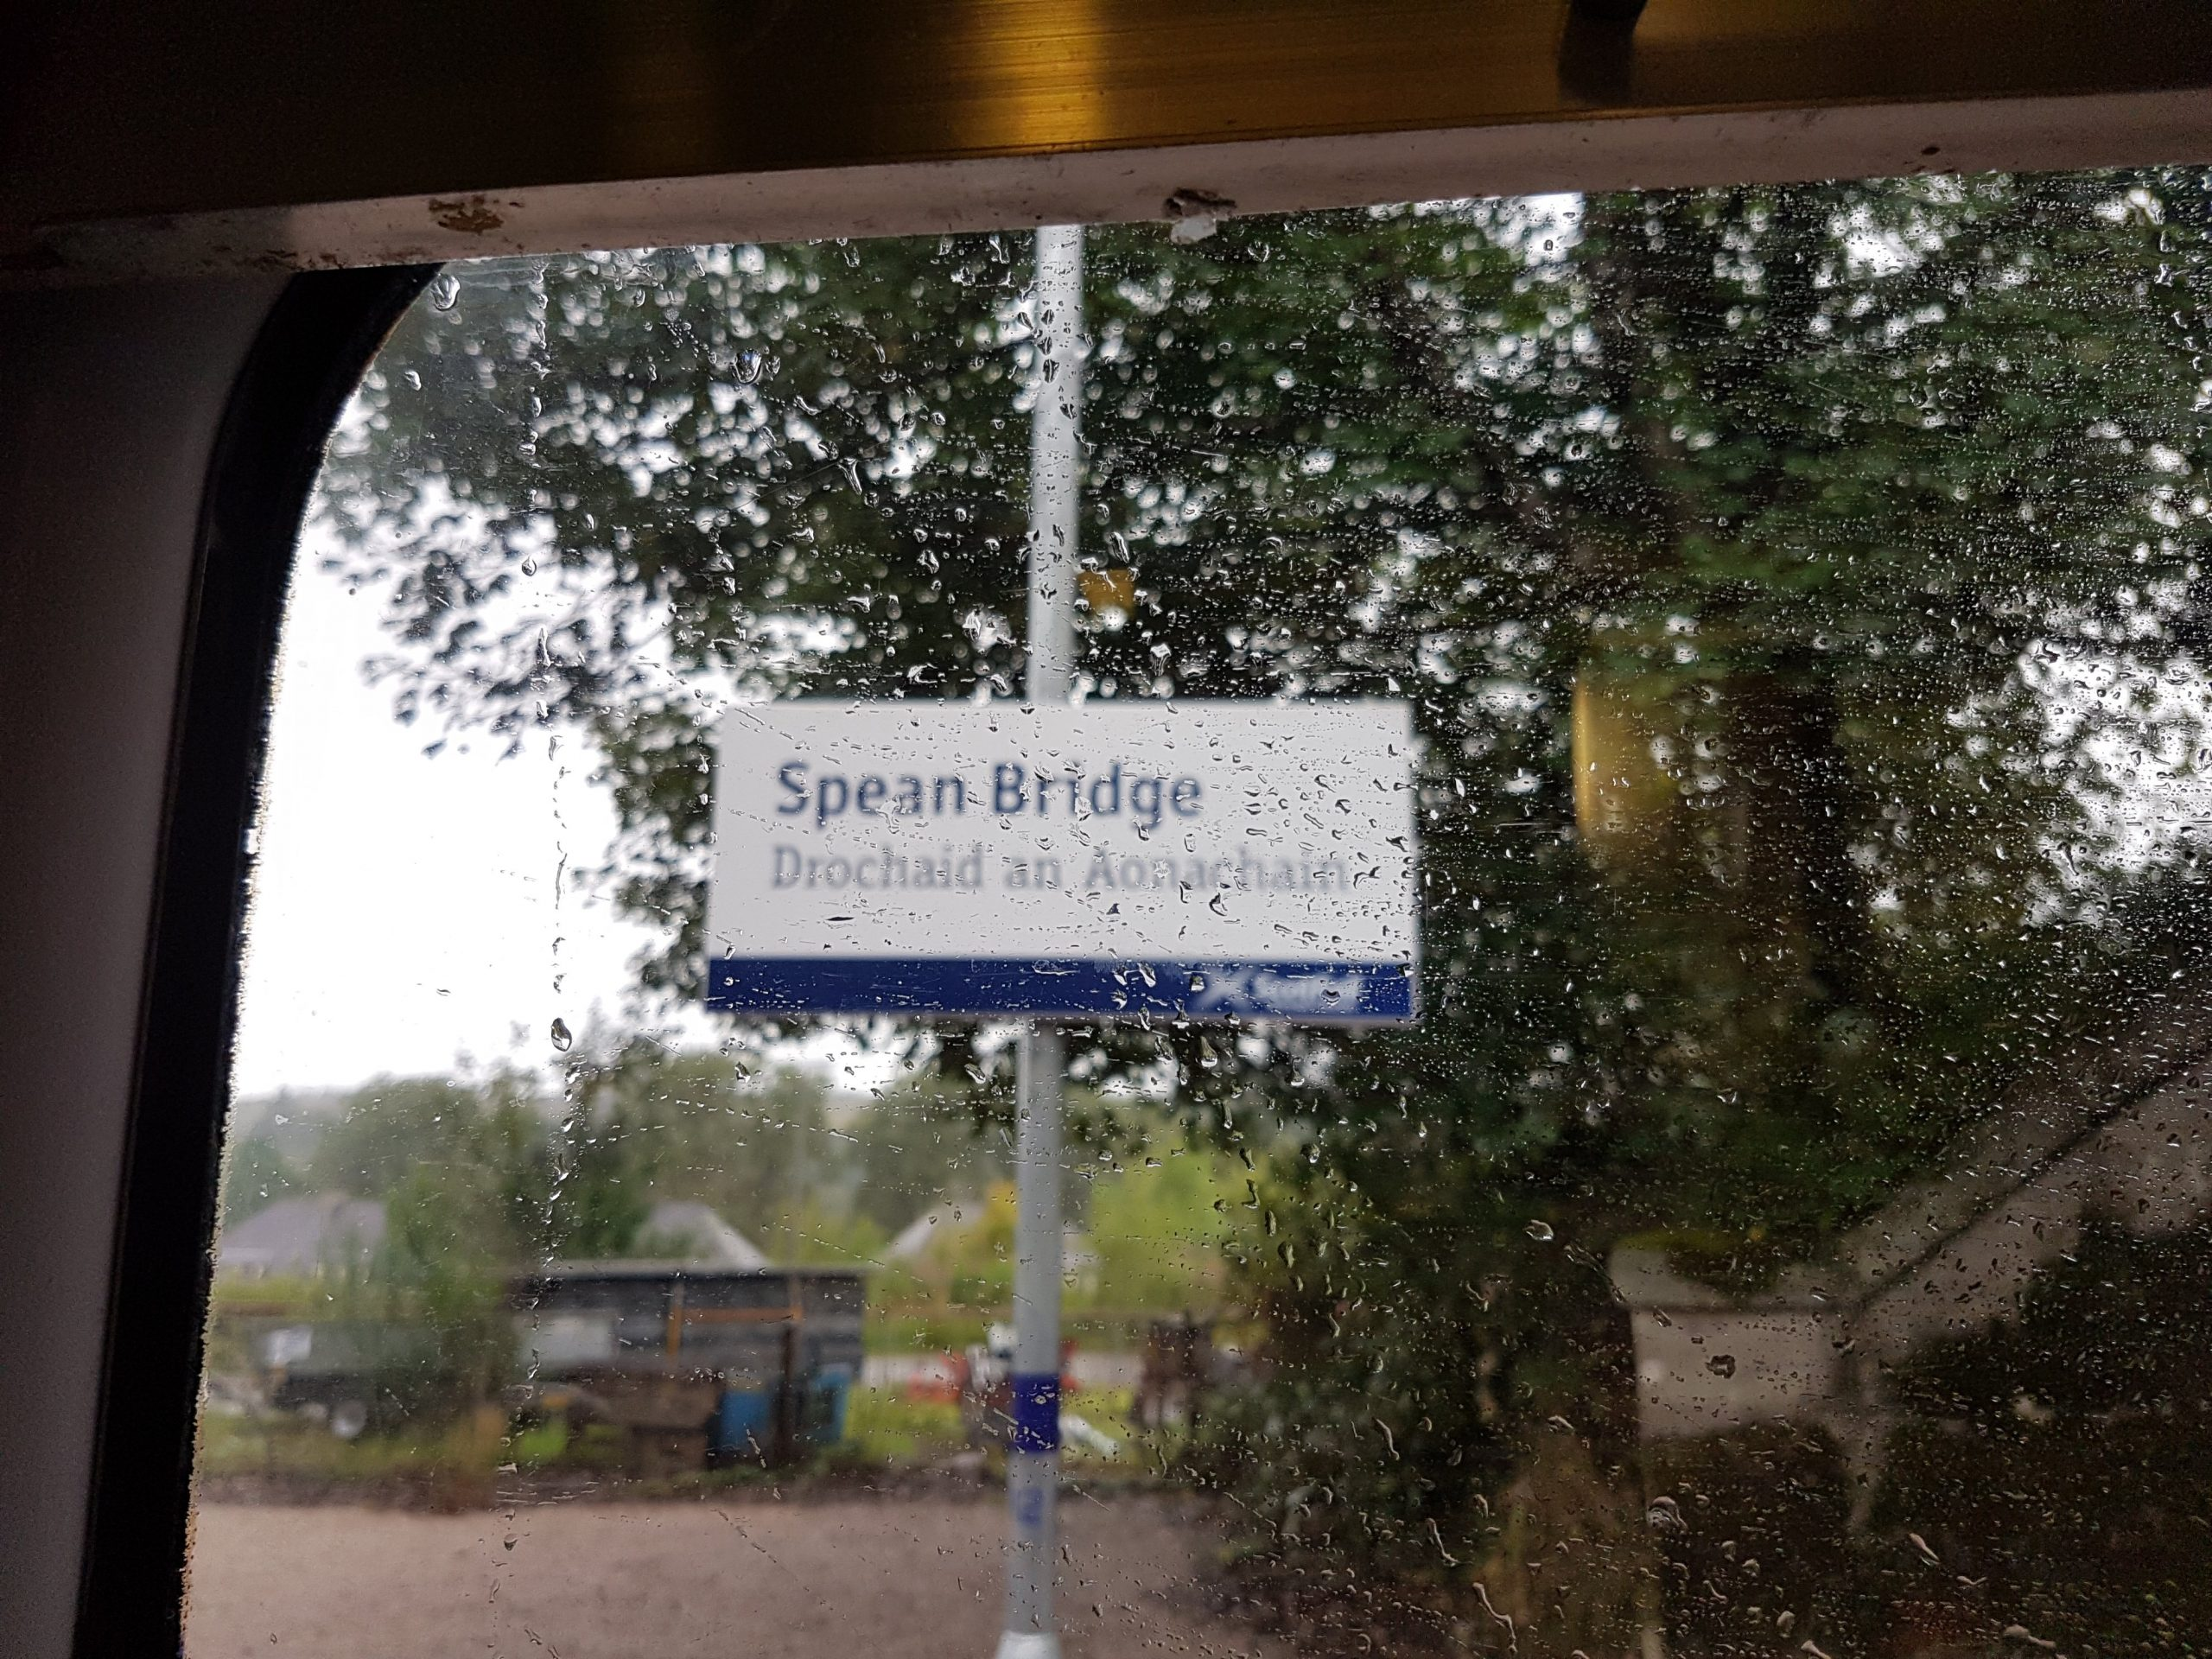 Spean Bridge sign